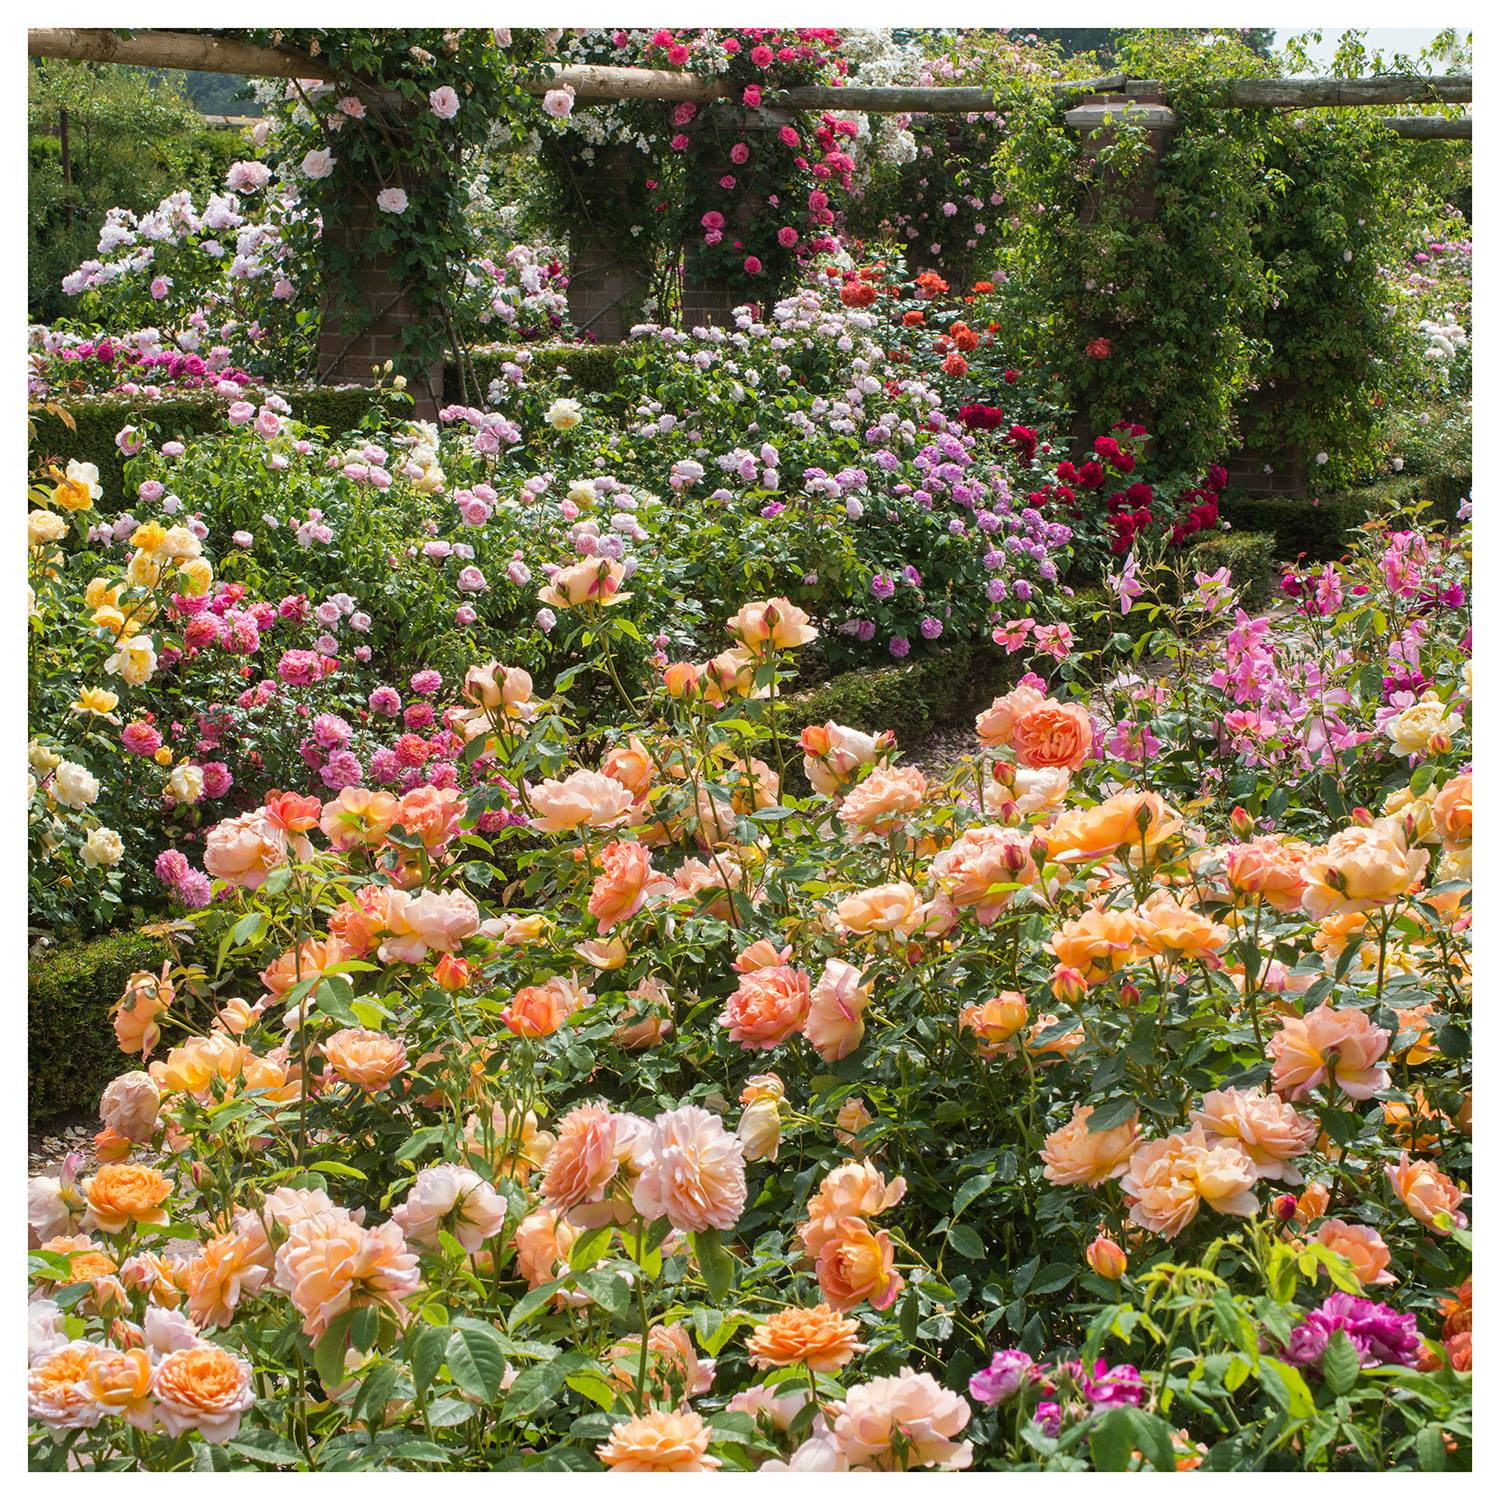 Beds of English Roses at David Austin Roses display, RHS Chelsea Flower Show 2018.